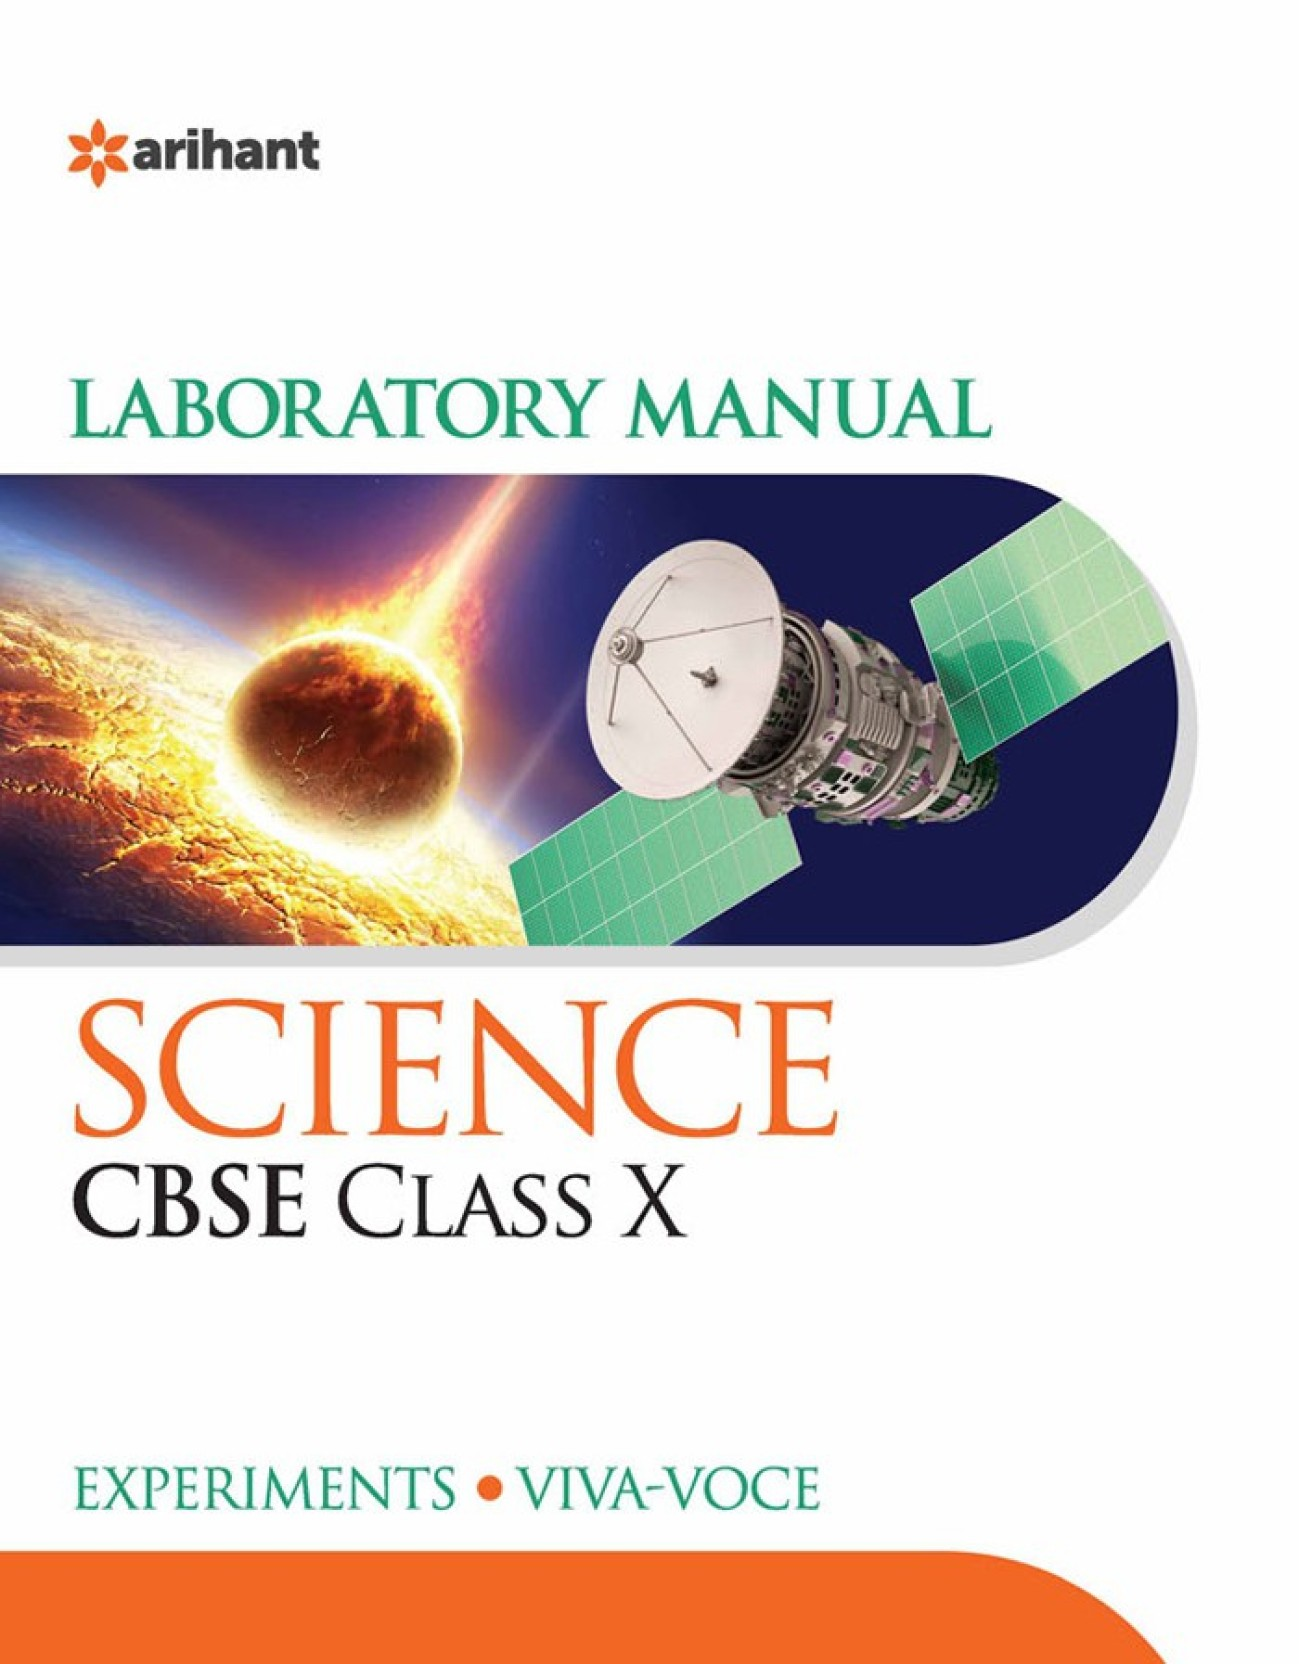 CBSE Science Laboratory Manual for Class X : Includes Experiments and Viva  - Voce. ADD TO CART